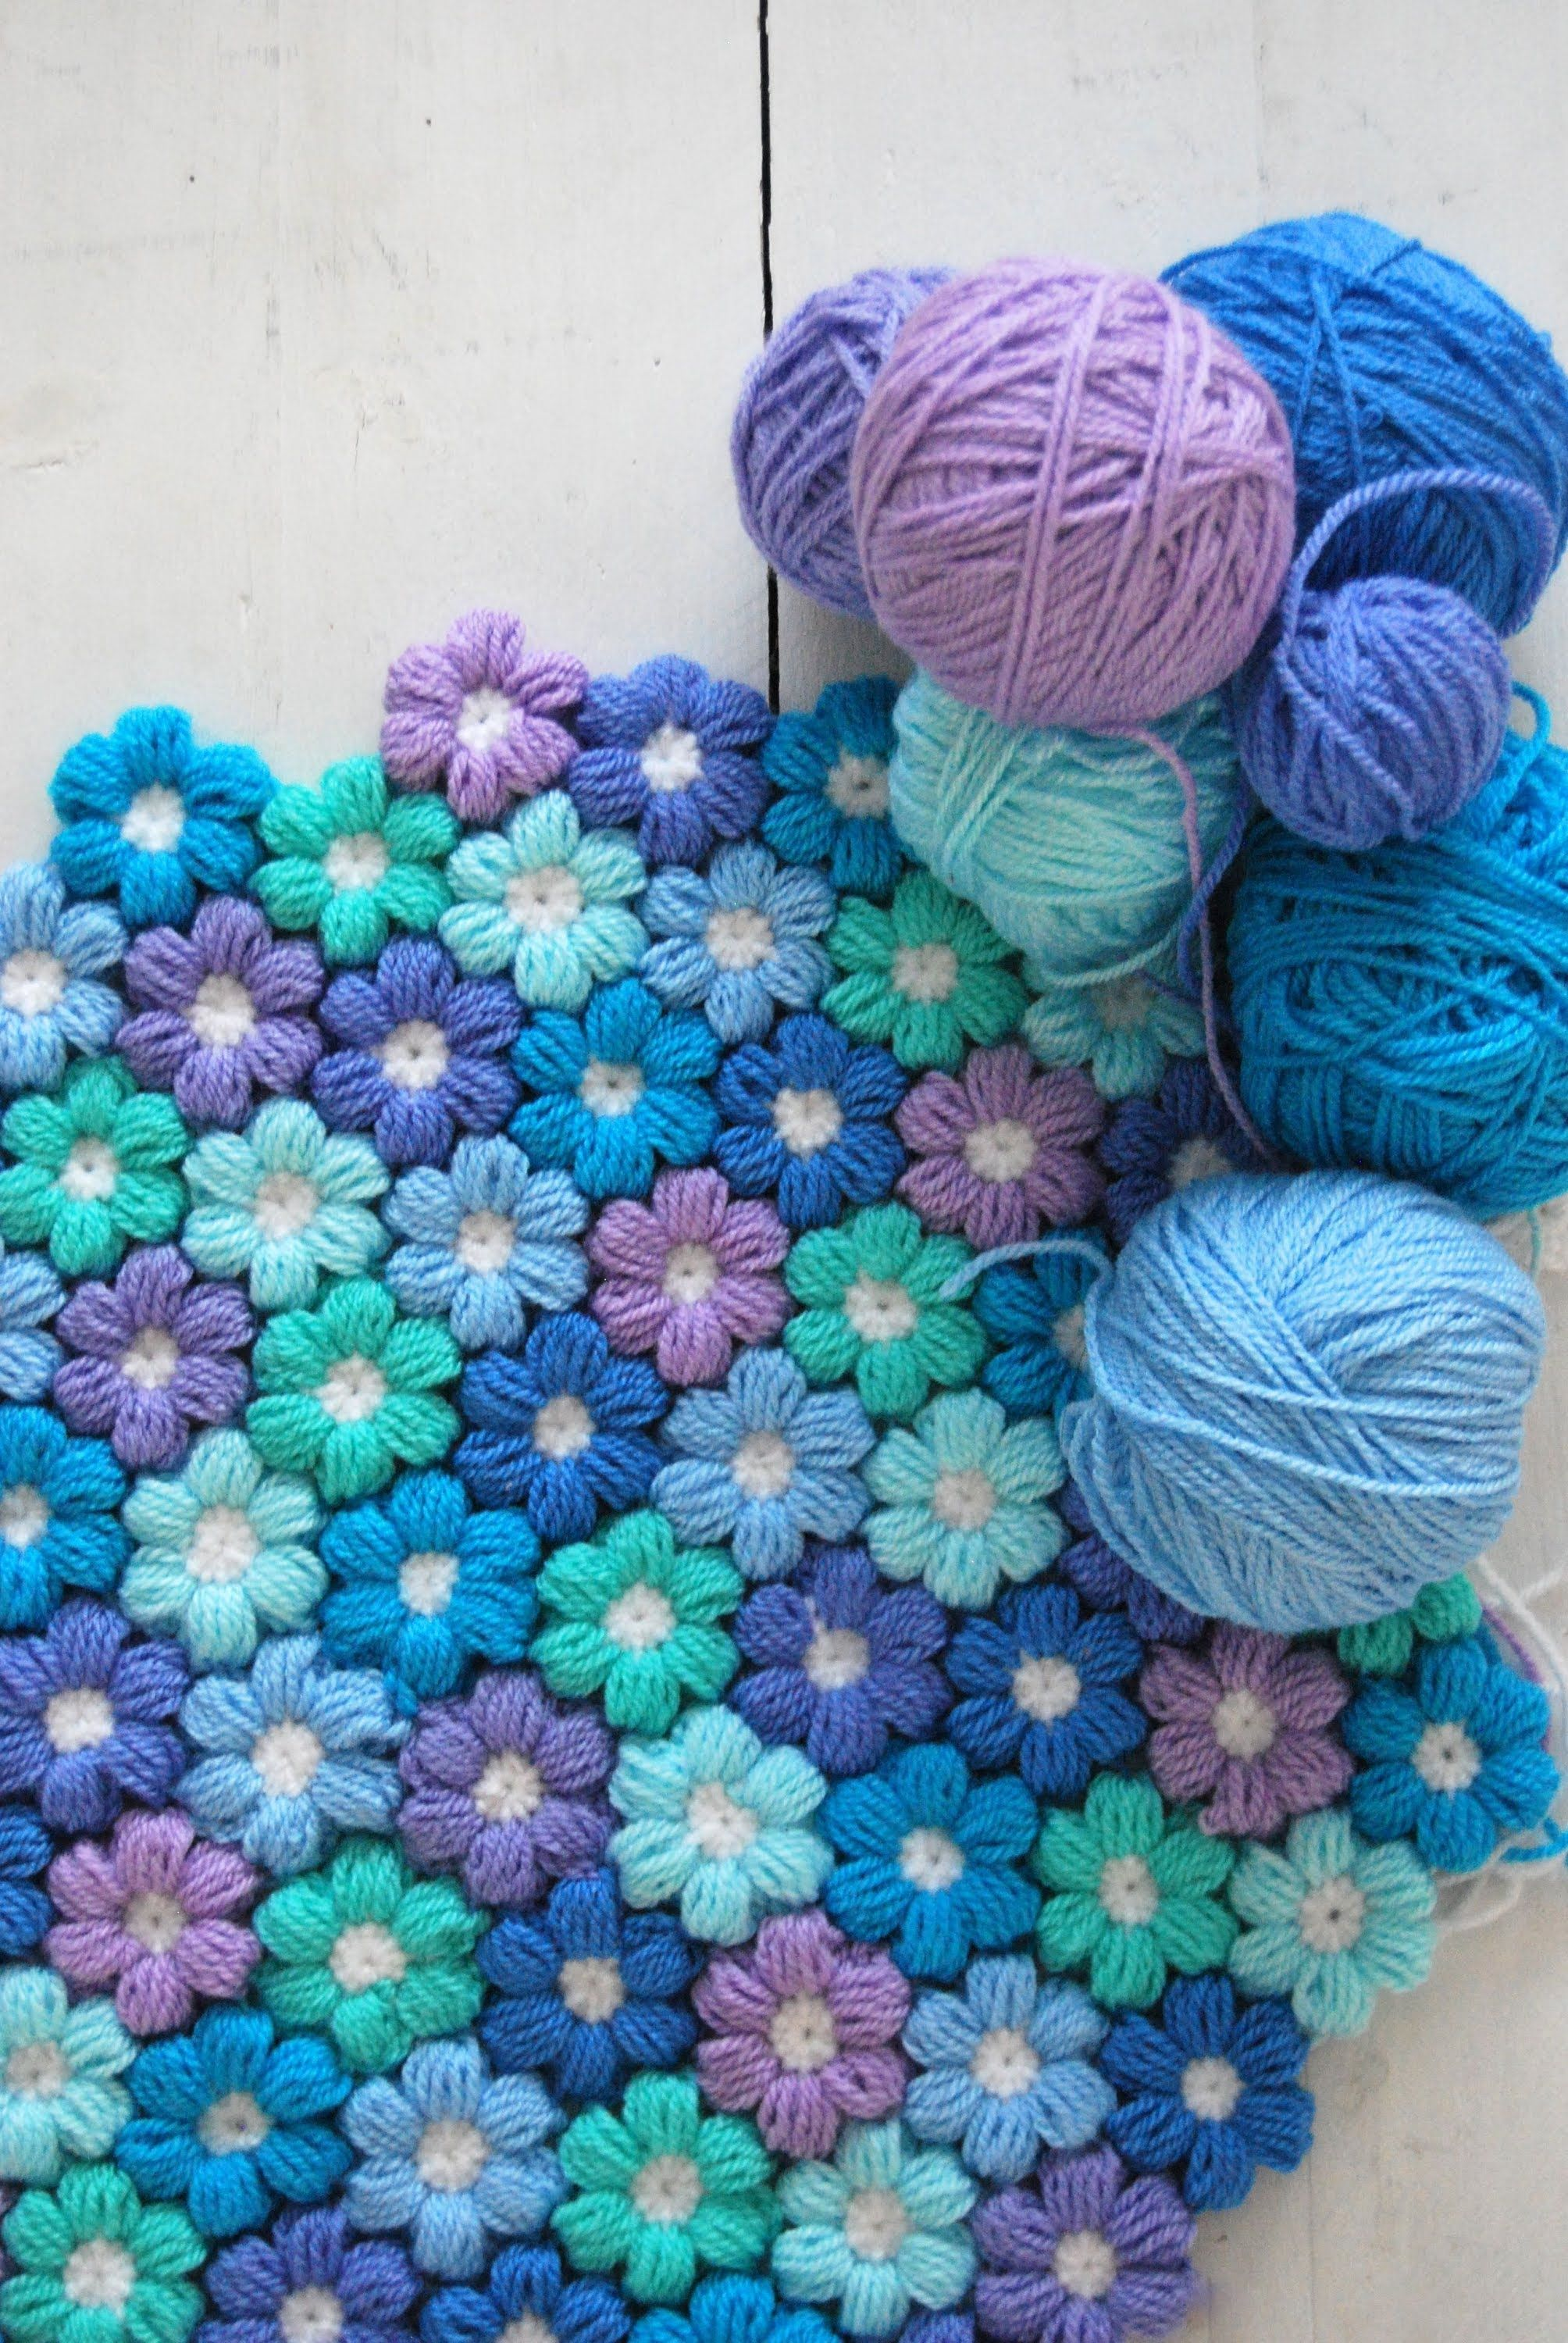 Diy crochet 6 petal puff stitch flower blanket - Find This Pin And More On Crochet By Linneagronstran